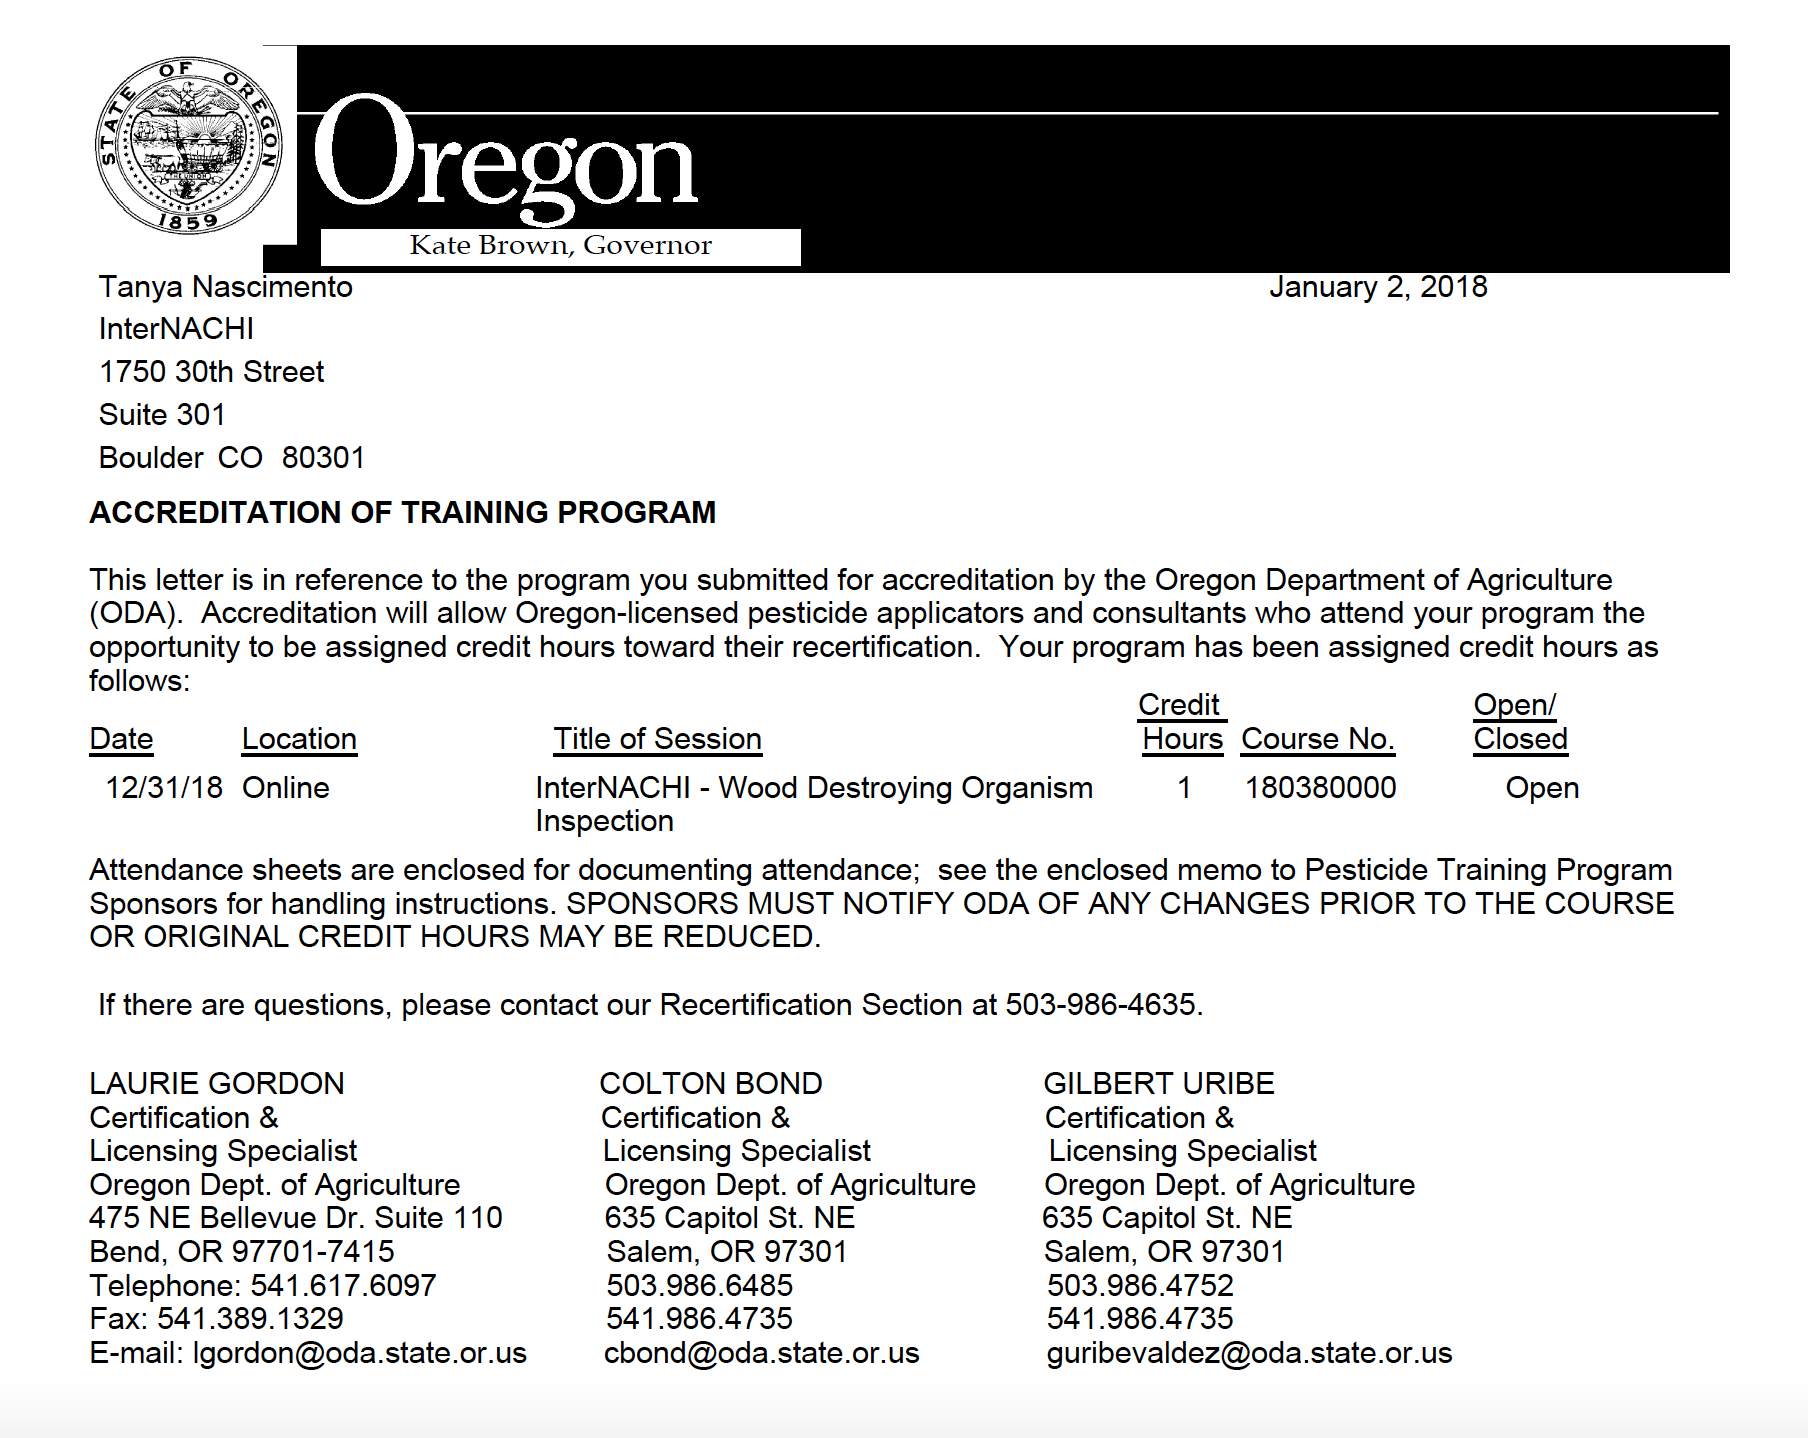 Oregon department of agriculture approves internachis free course 170680101 1 credit hour expiration 12312018 take the free online xflitez Gallery